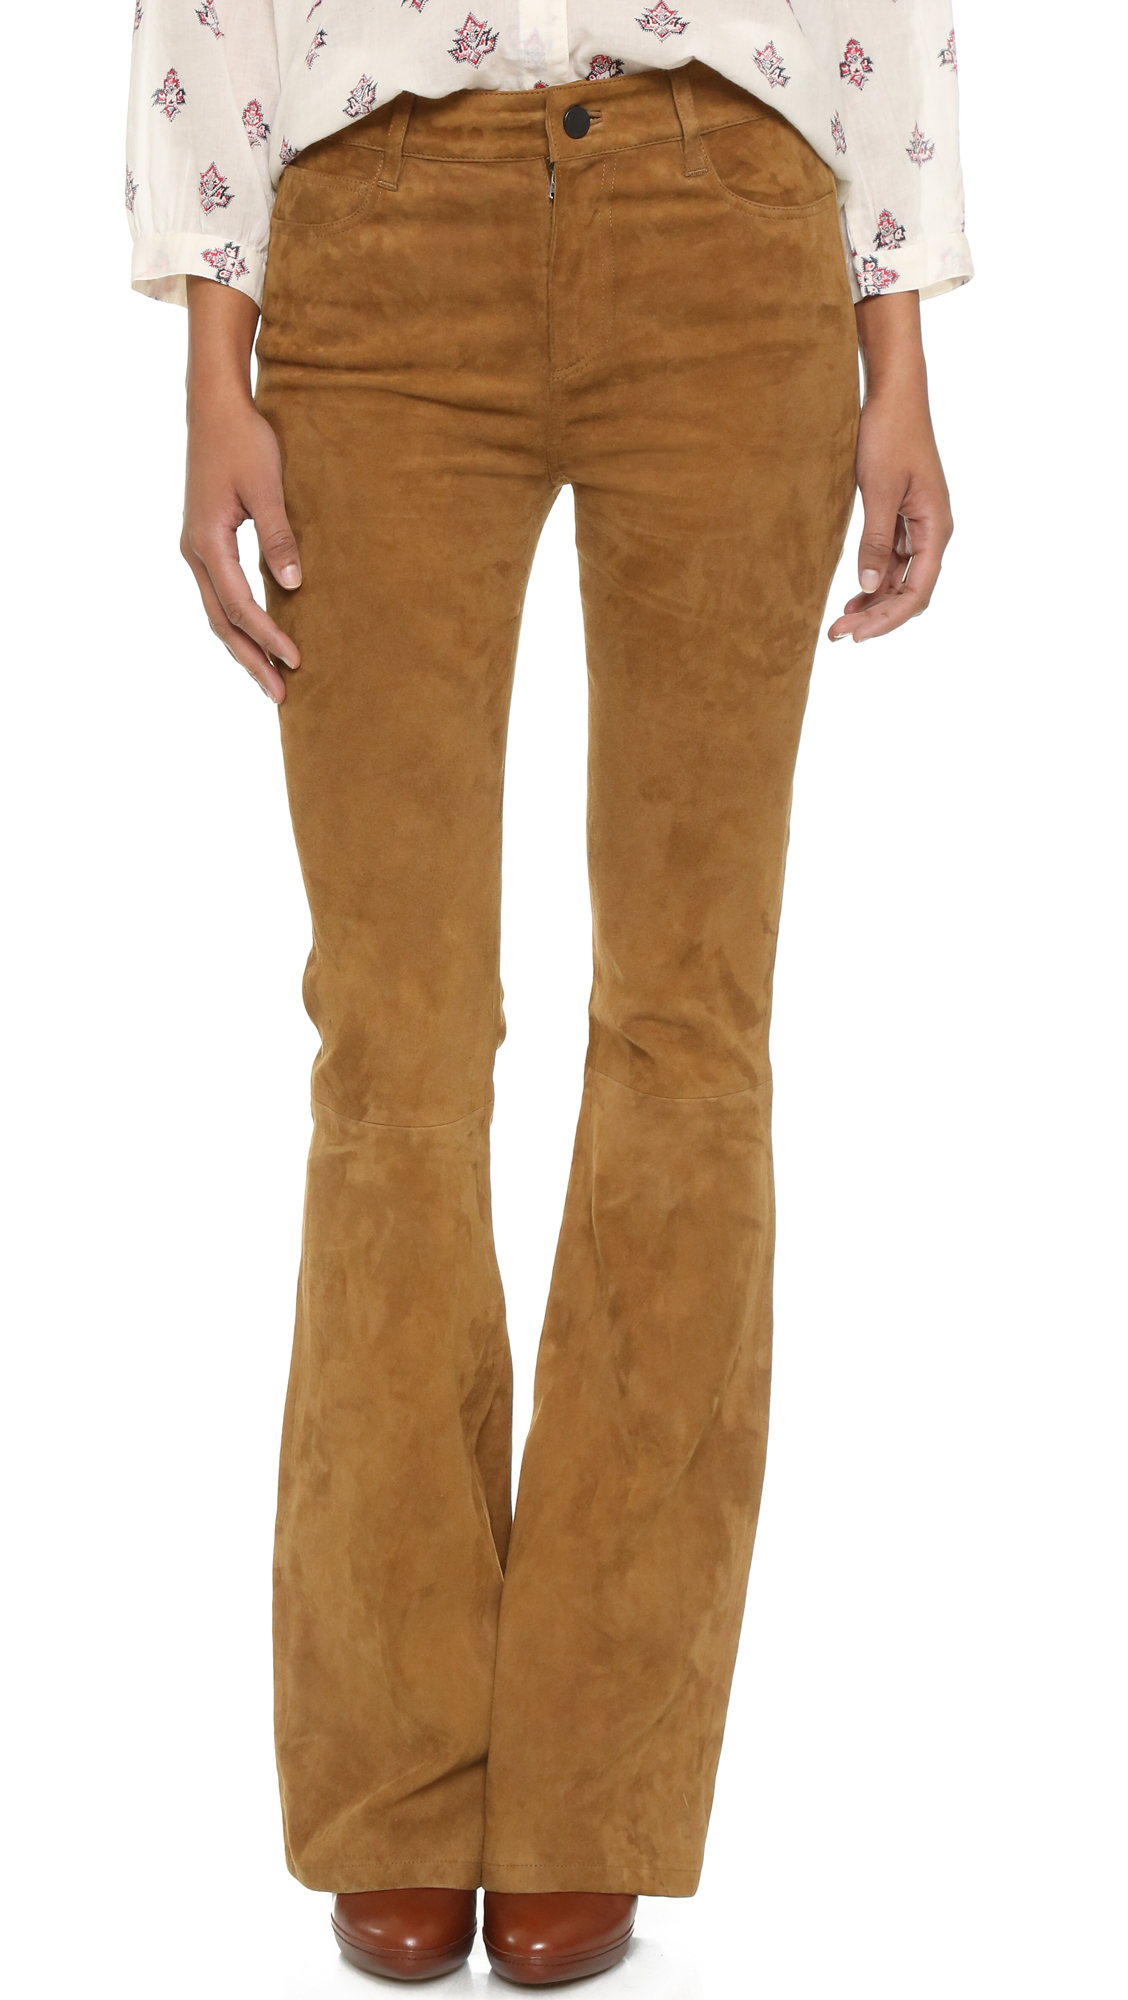 Paige High Rise Suede Bell Canyon Pants in Brown | Lyst | 1128 x 2000 jpeg 882kB